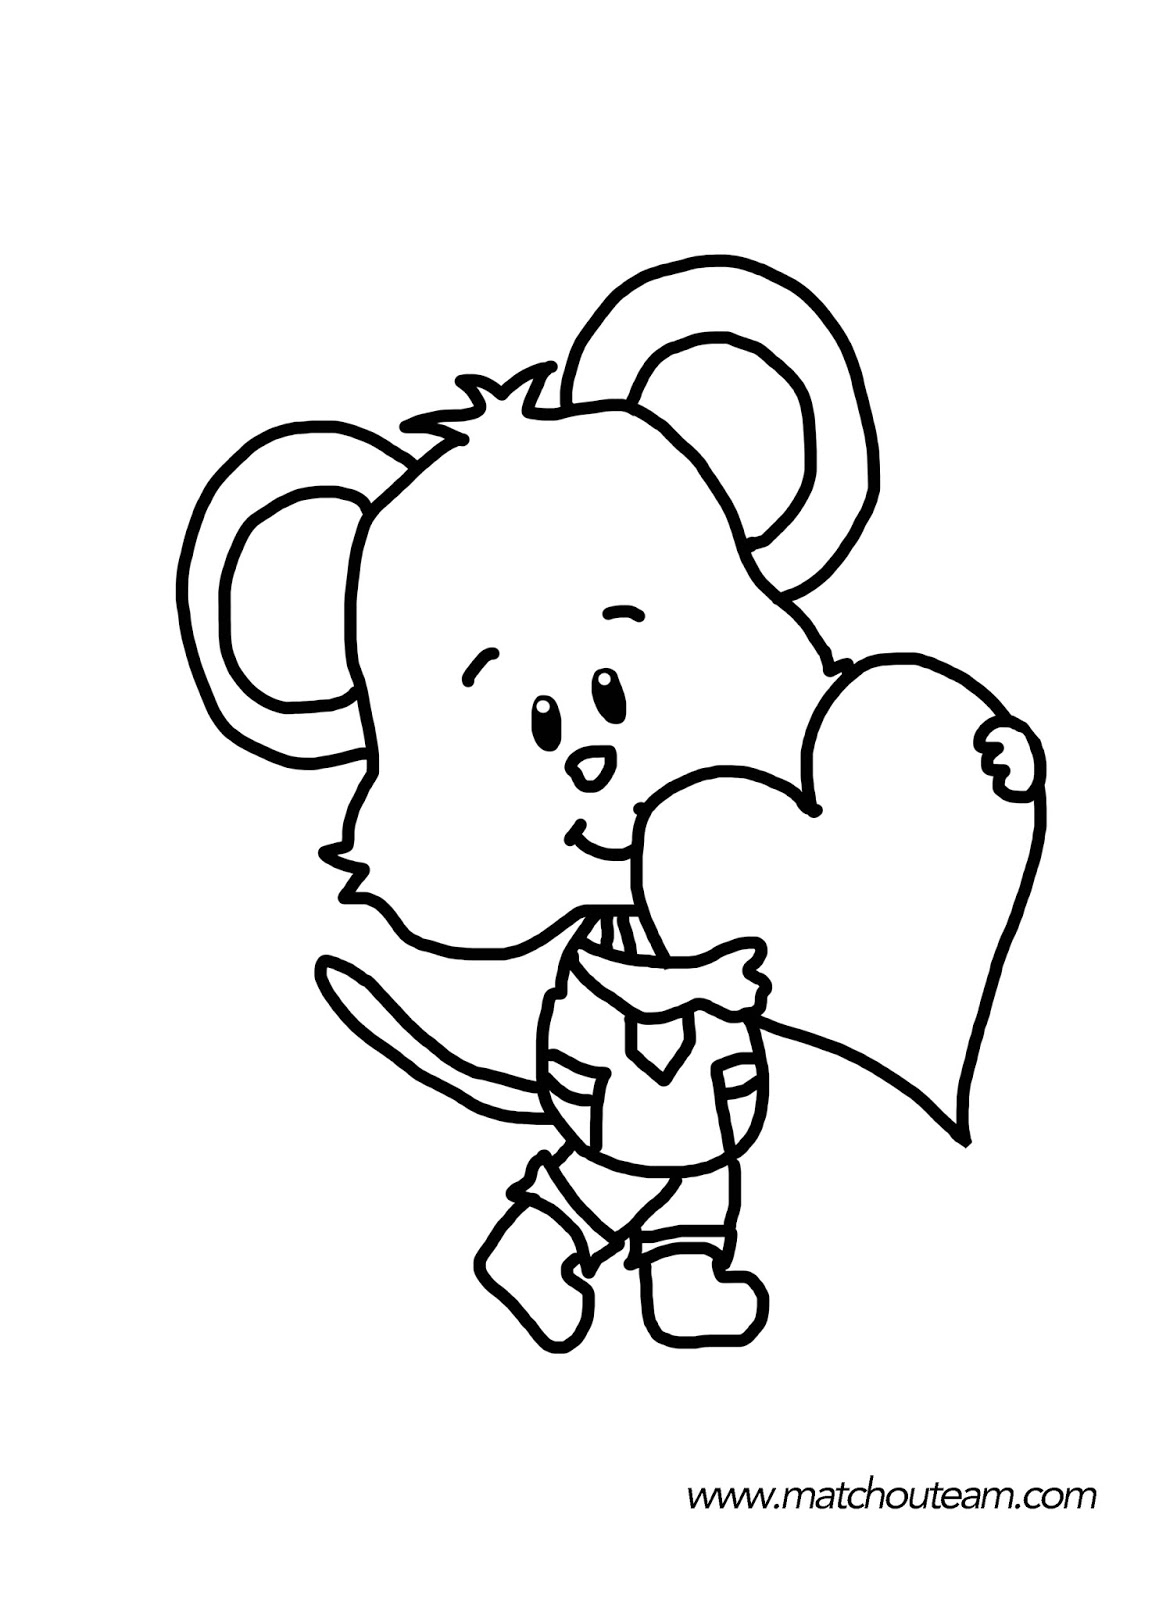 Letter A Coloring Pages in addition Deer Coloring Pages further Line Drawing Rose likewise Outline Drawings For Kids Outline Drawing For Kids Coloring Page Of Pet Dog Sitting For Kids Kids Printing Pages in addition 5 Creative Ways To Thank Your Volunteers. on fun coloring page